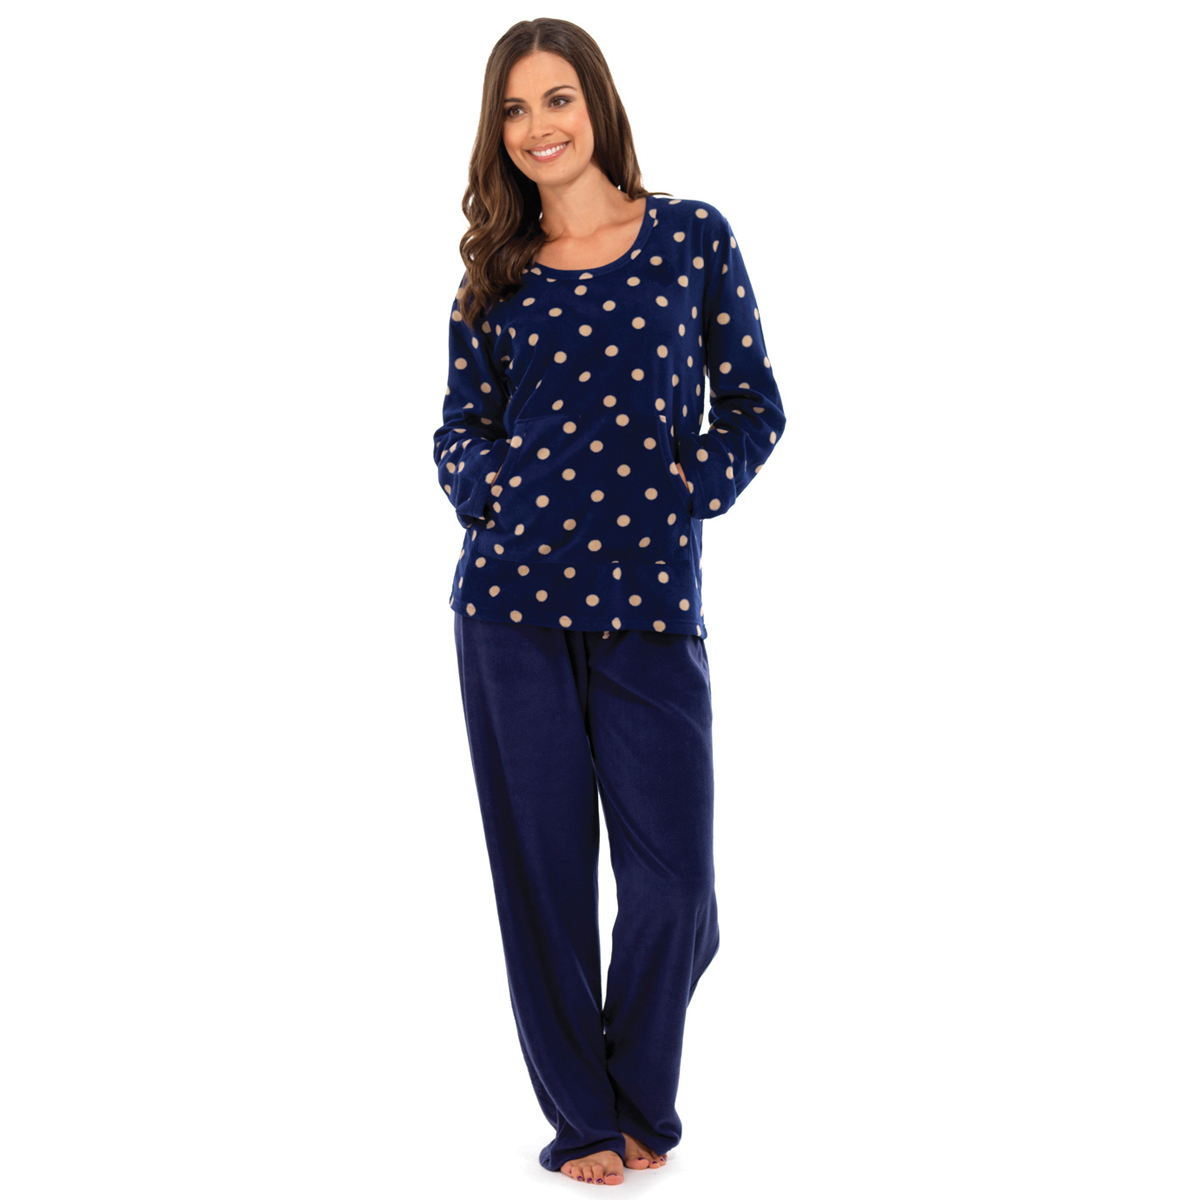 Shop Target for Pajama Sets you will love at great low prices. Spend $35+ or use your REDcard & get free 2-day shipping on most items or same-day pick-up in store.